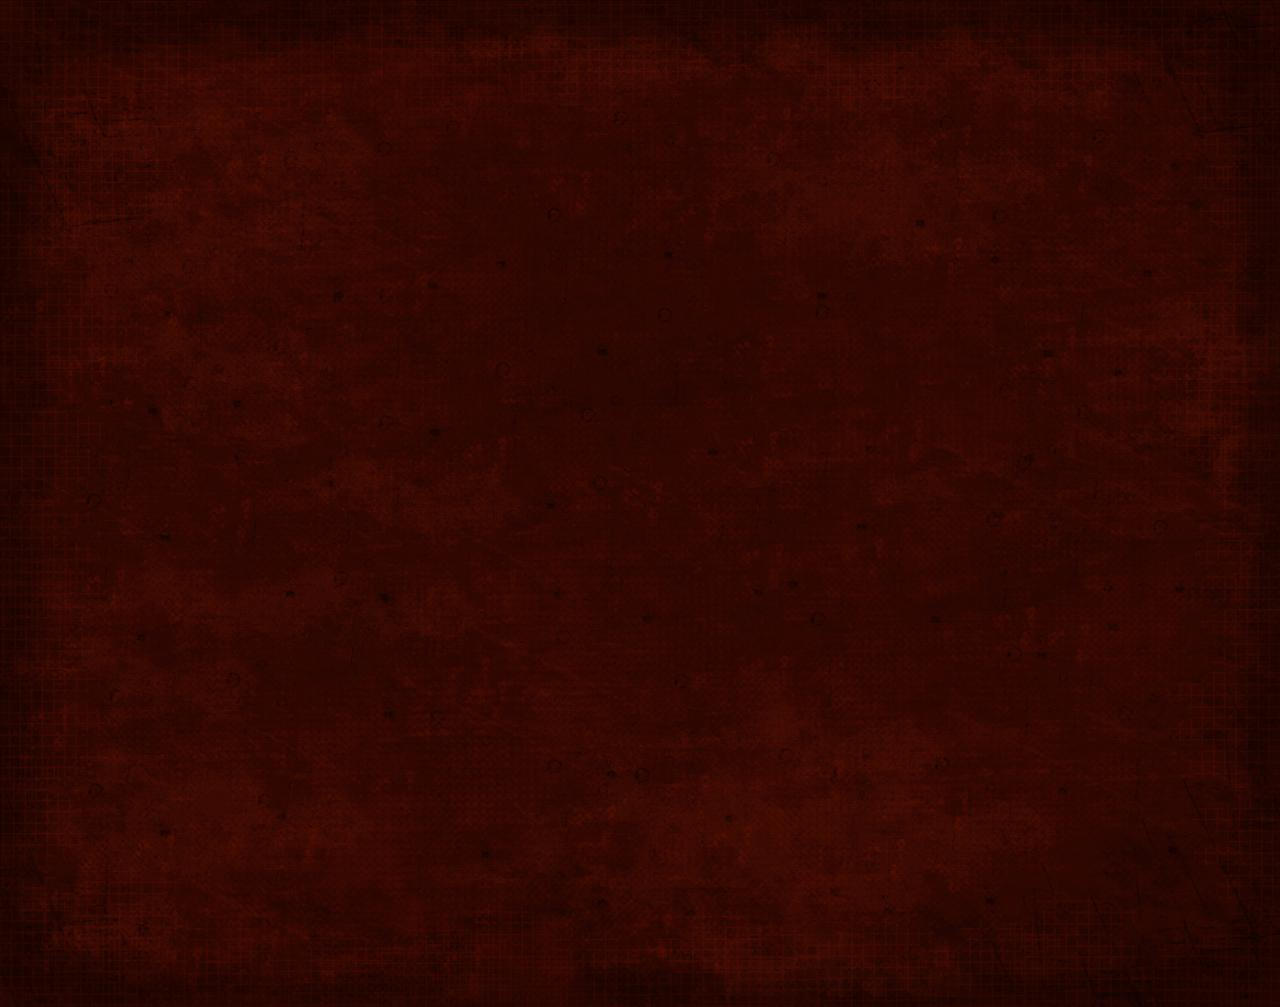 maroon background powerpoint backgrounds for free powerpoint templates seek gif